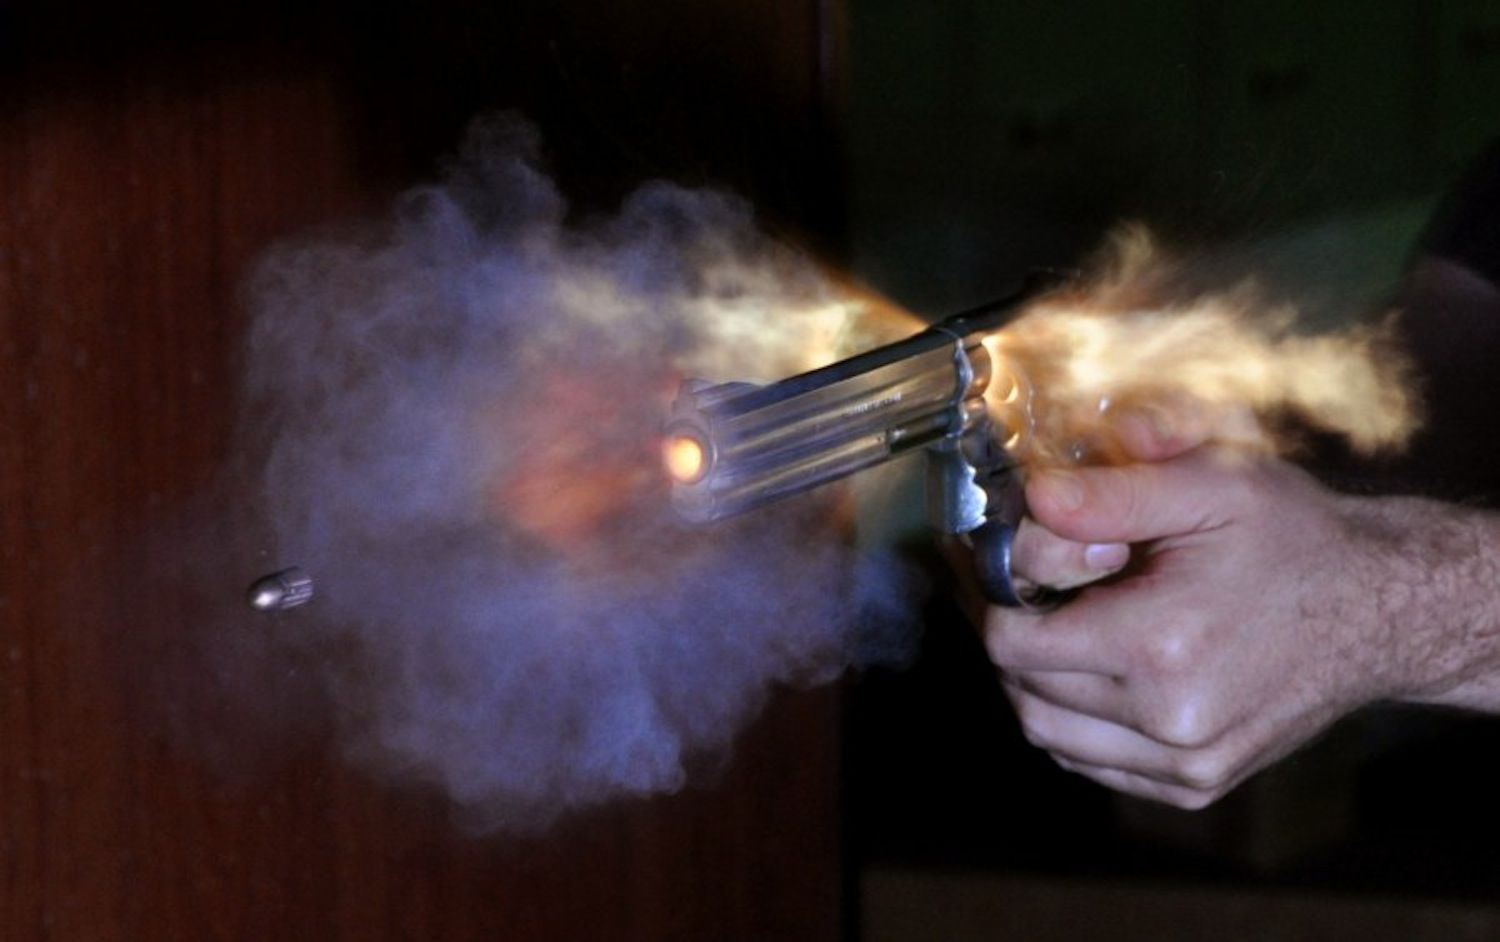 Ultra-high speed photo of bullet fired out of a S&W revolver photographed with an air-gap flash